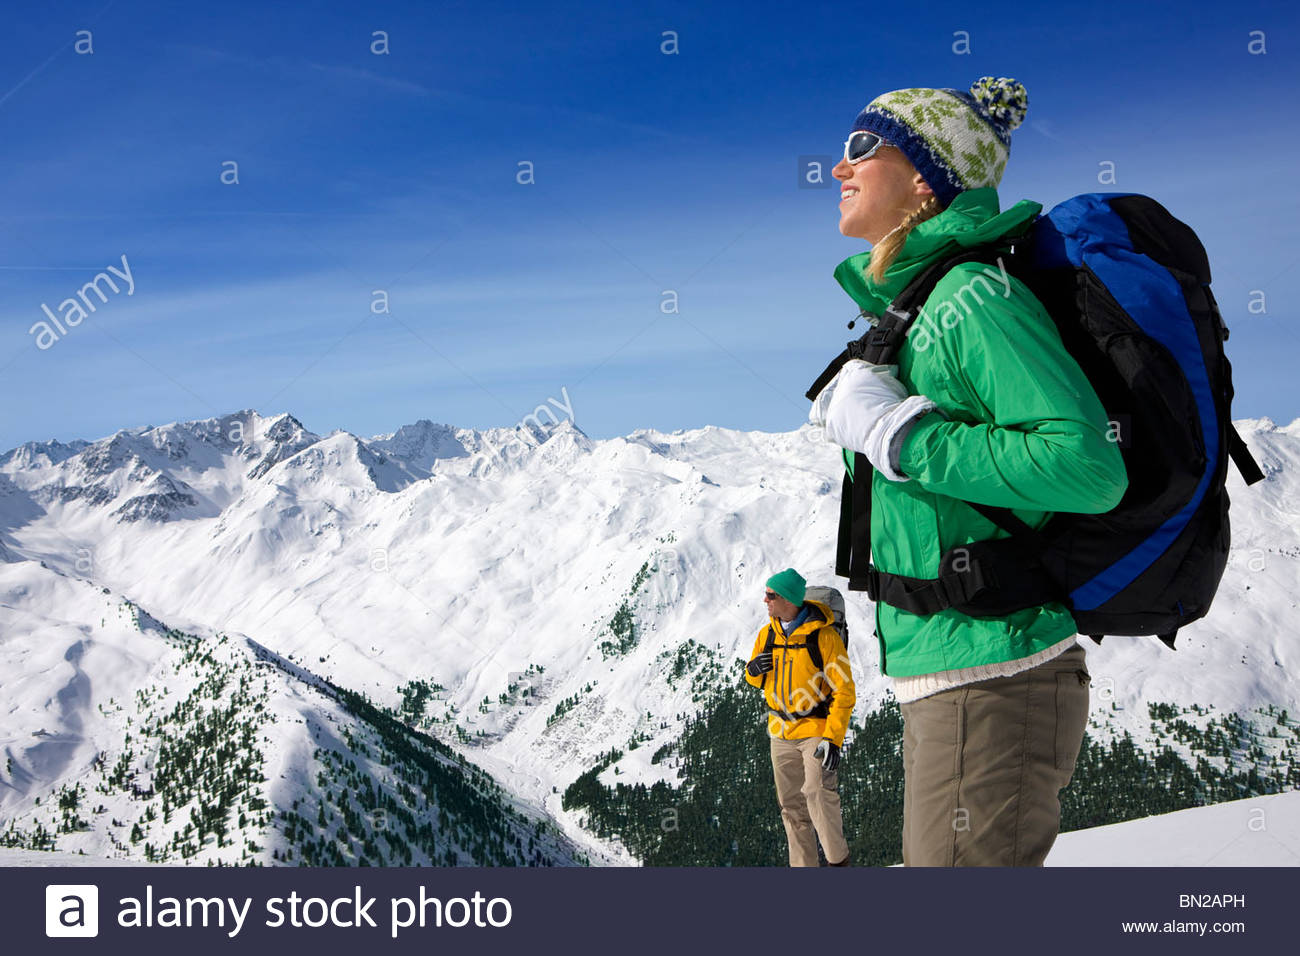 Couple backpacking on snowy mountain Photo Stock